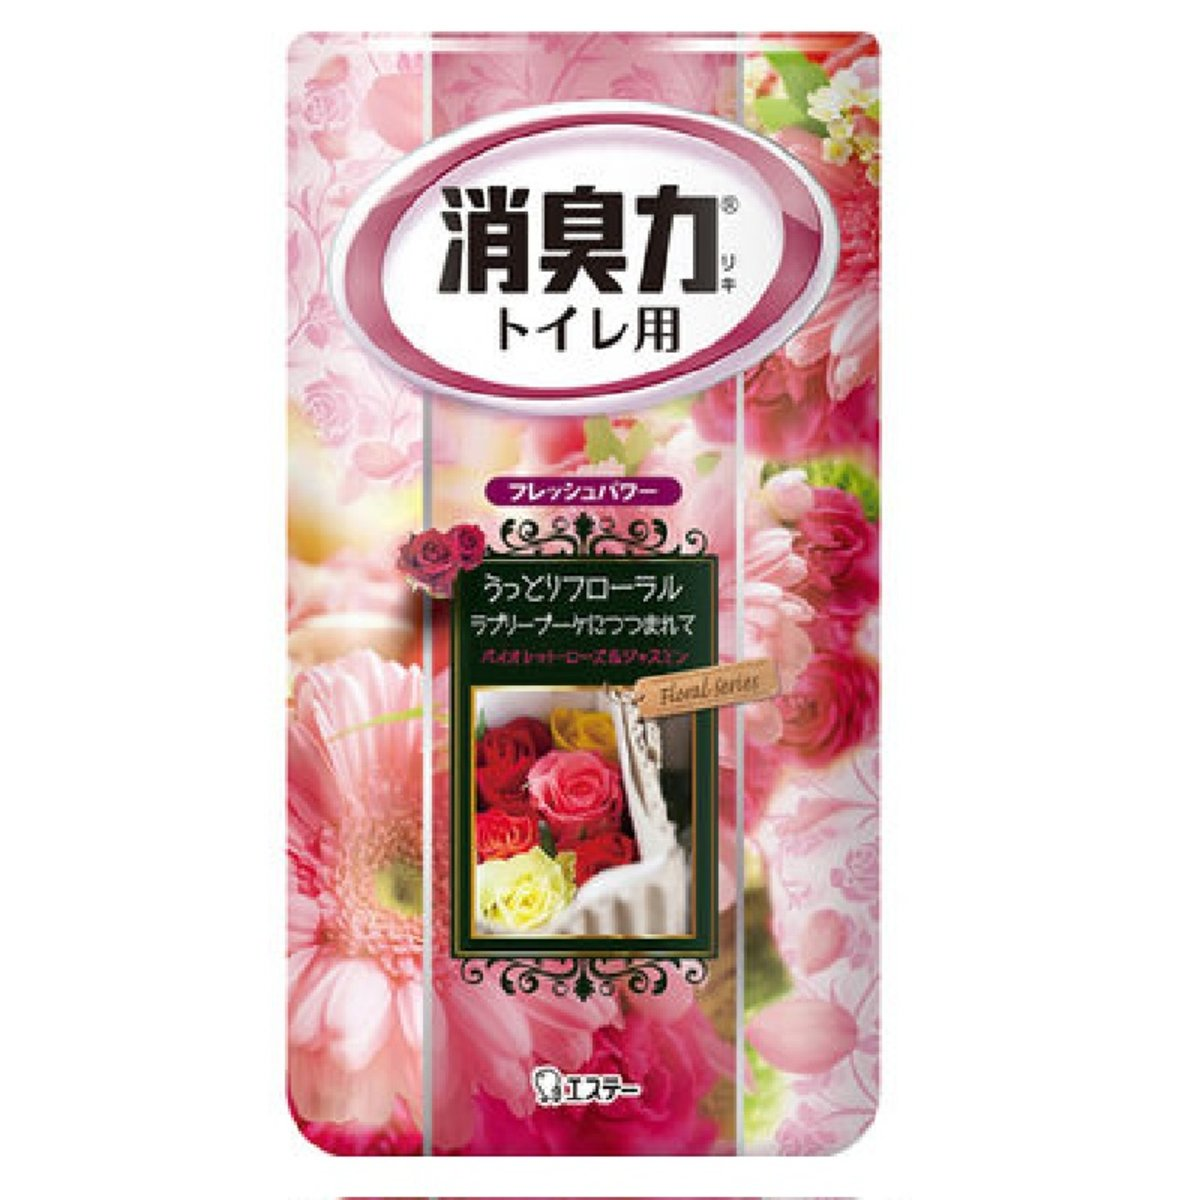 Toilet Aroma Deodorizer (Pink) #Lovely Floral 400ml